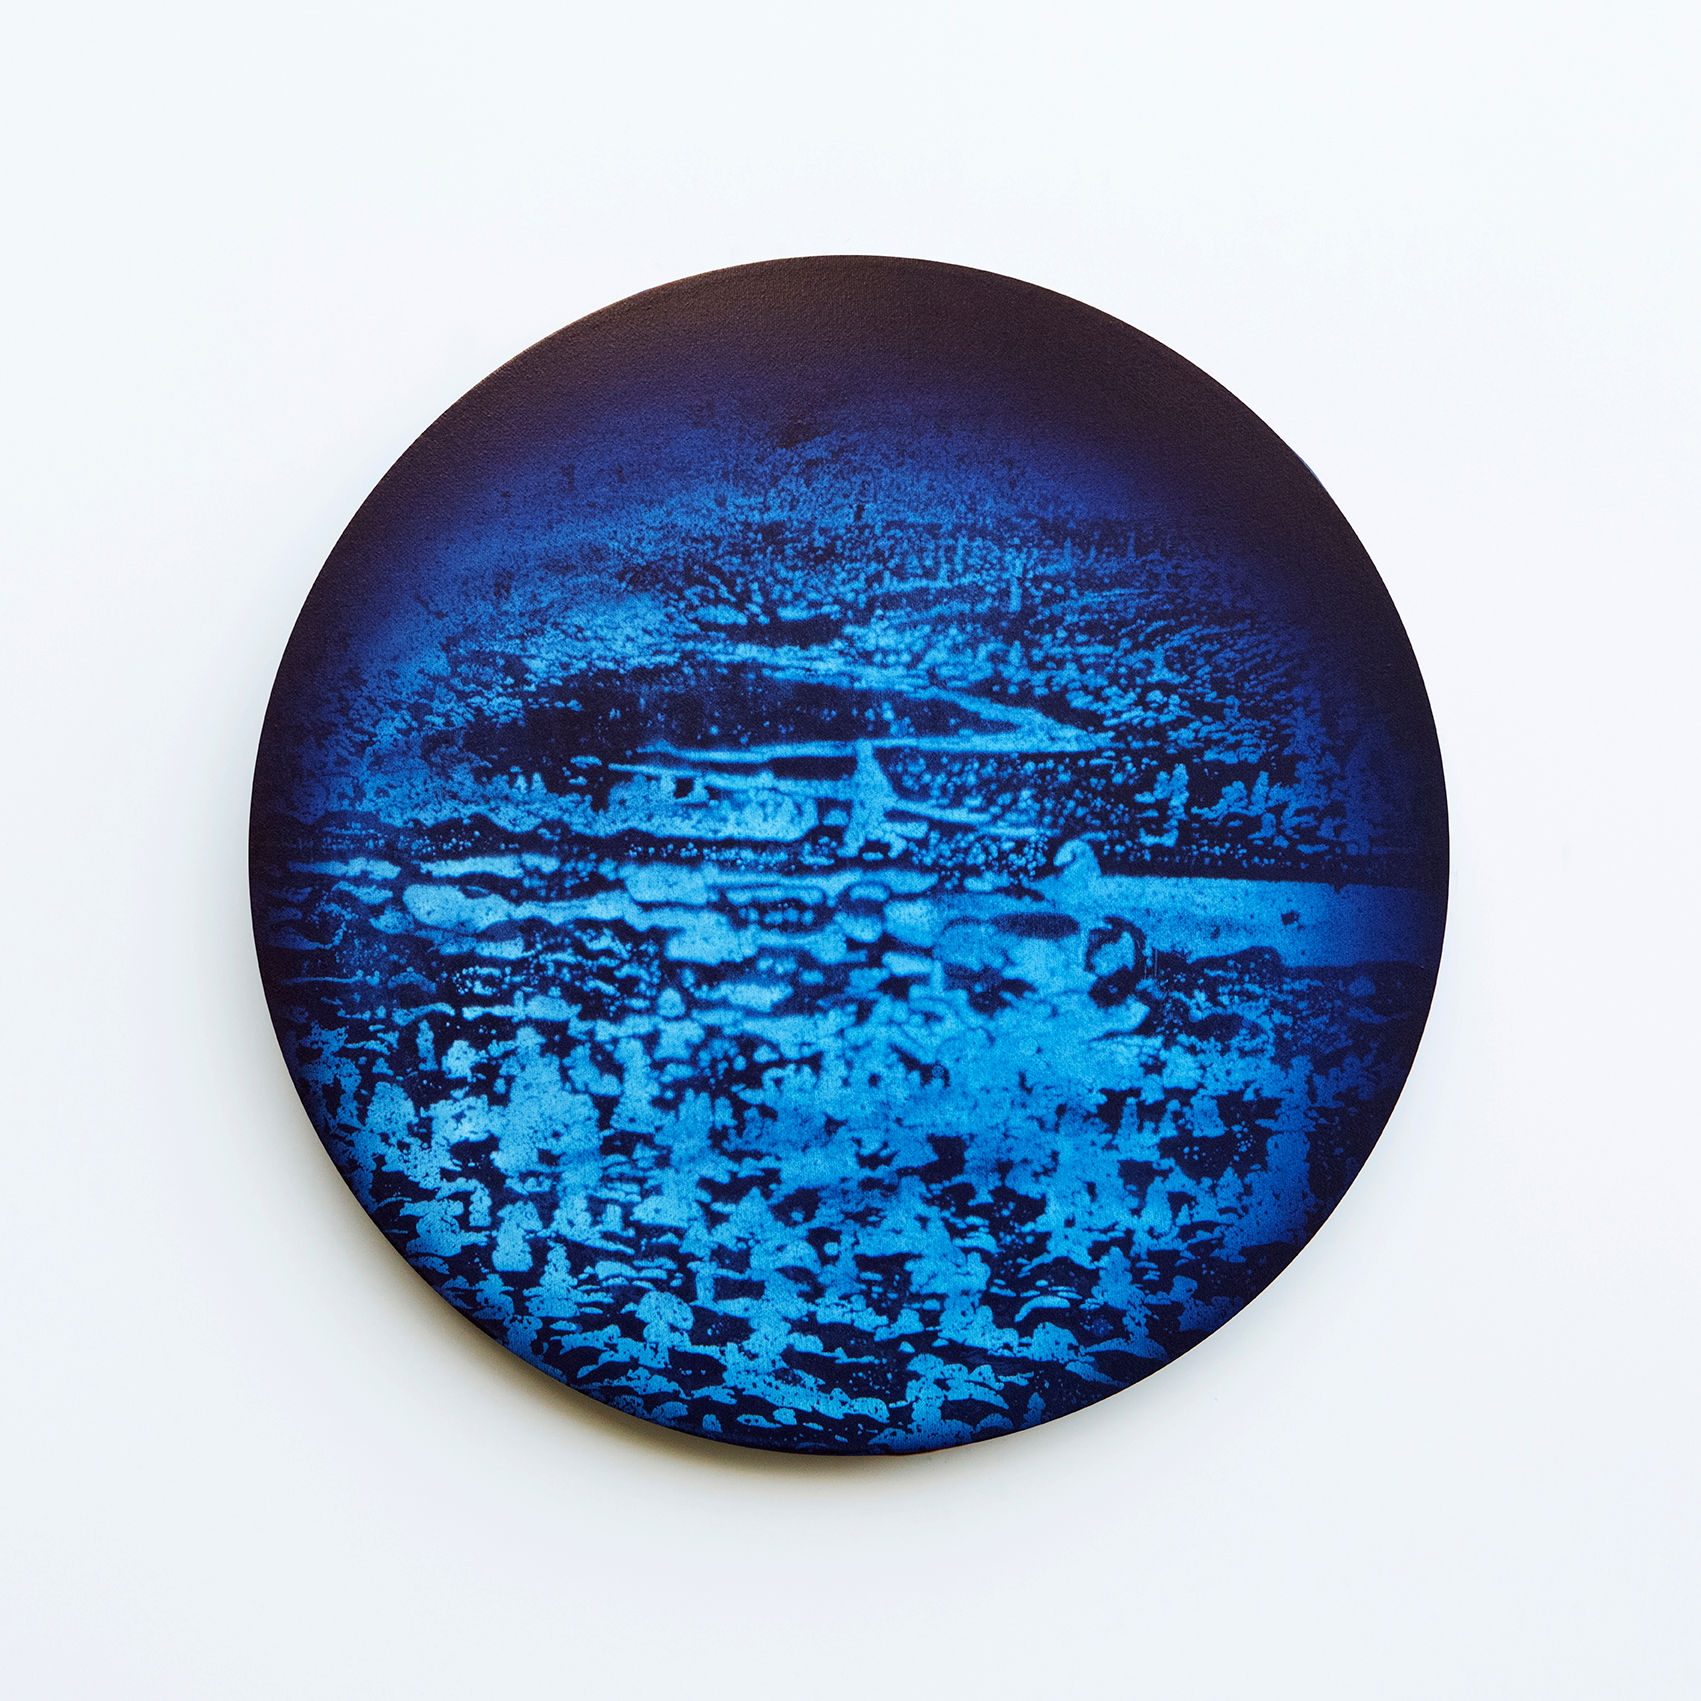 WATERSCAPE 18013_20270821, Diameter 40cm, Traditional pigment, water-print, water-drawing on canvas, 2018